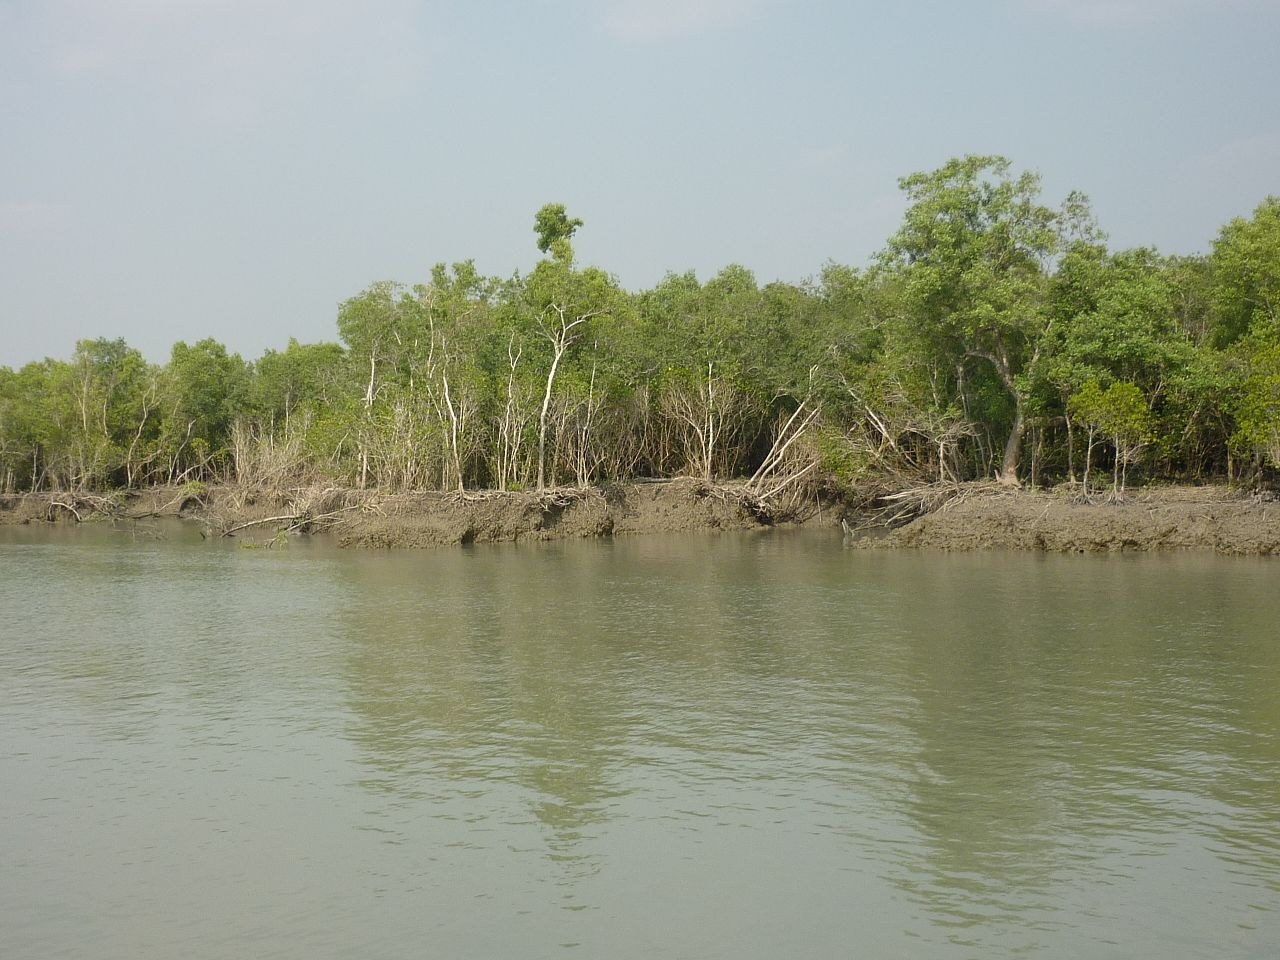 The mangrove forest is damaged by rising sea level, Sundarbans, 12-2009 - panoramio.jpg